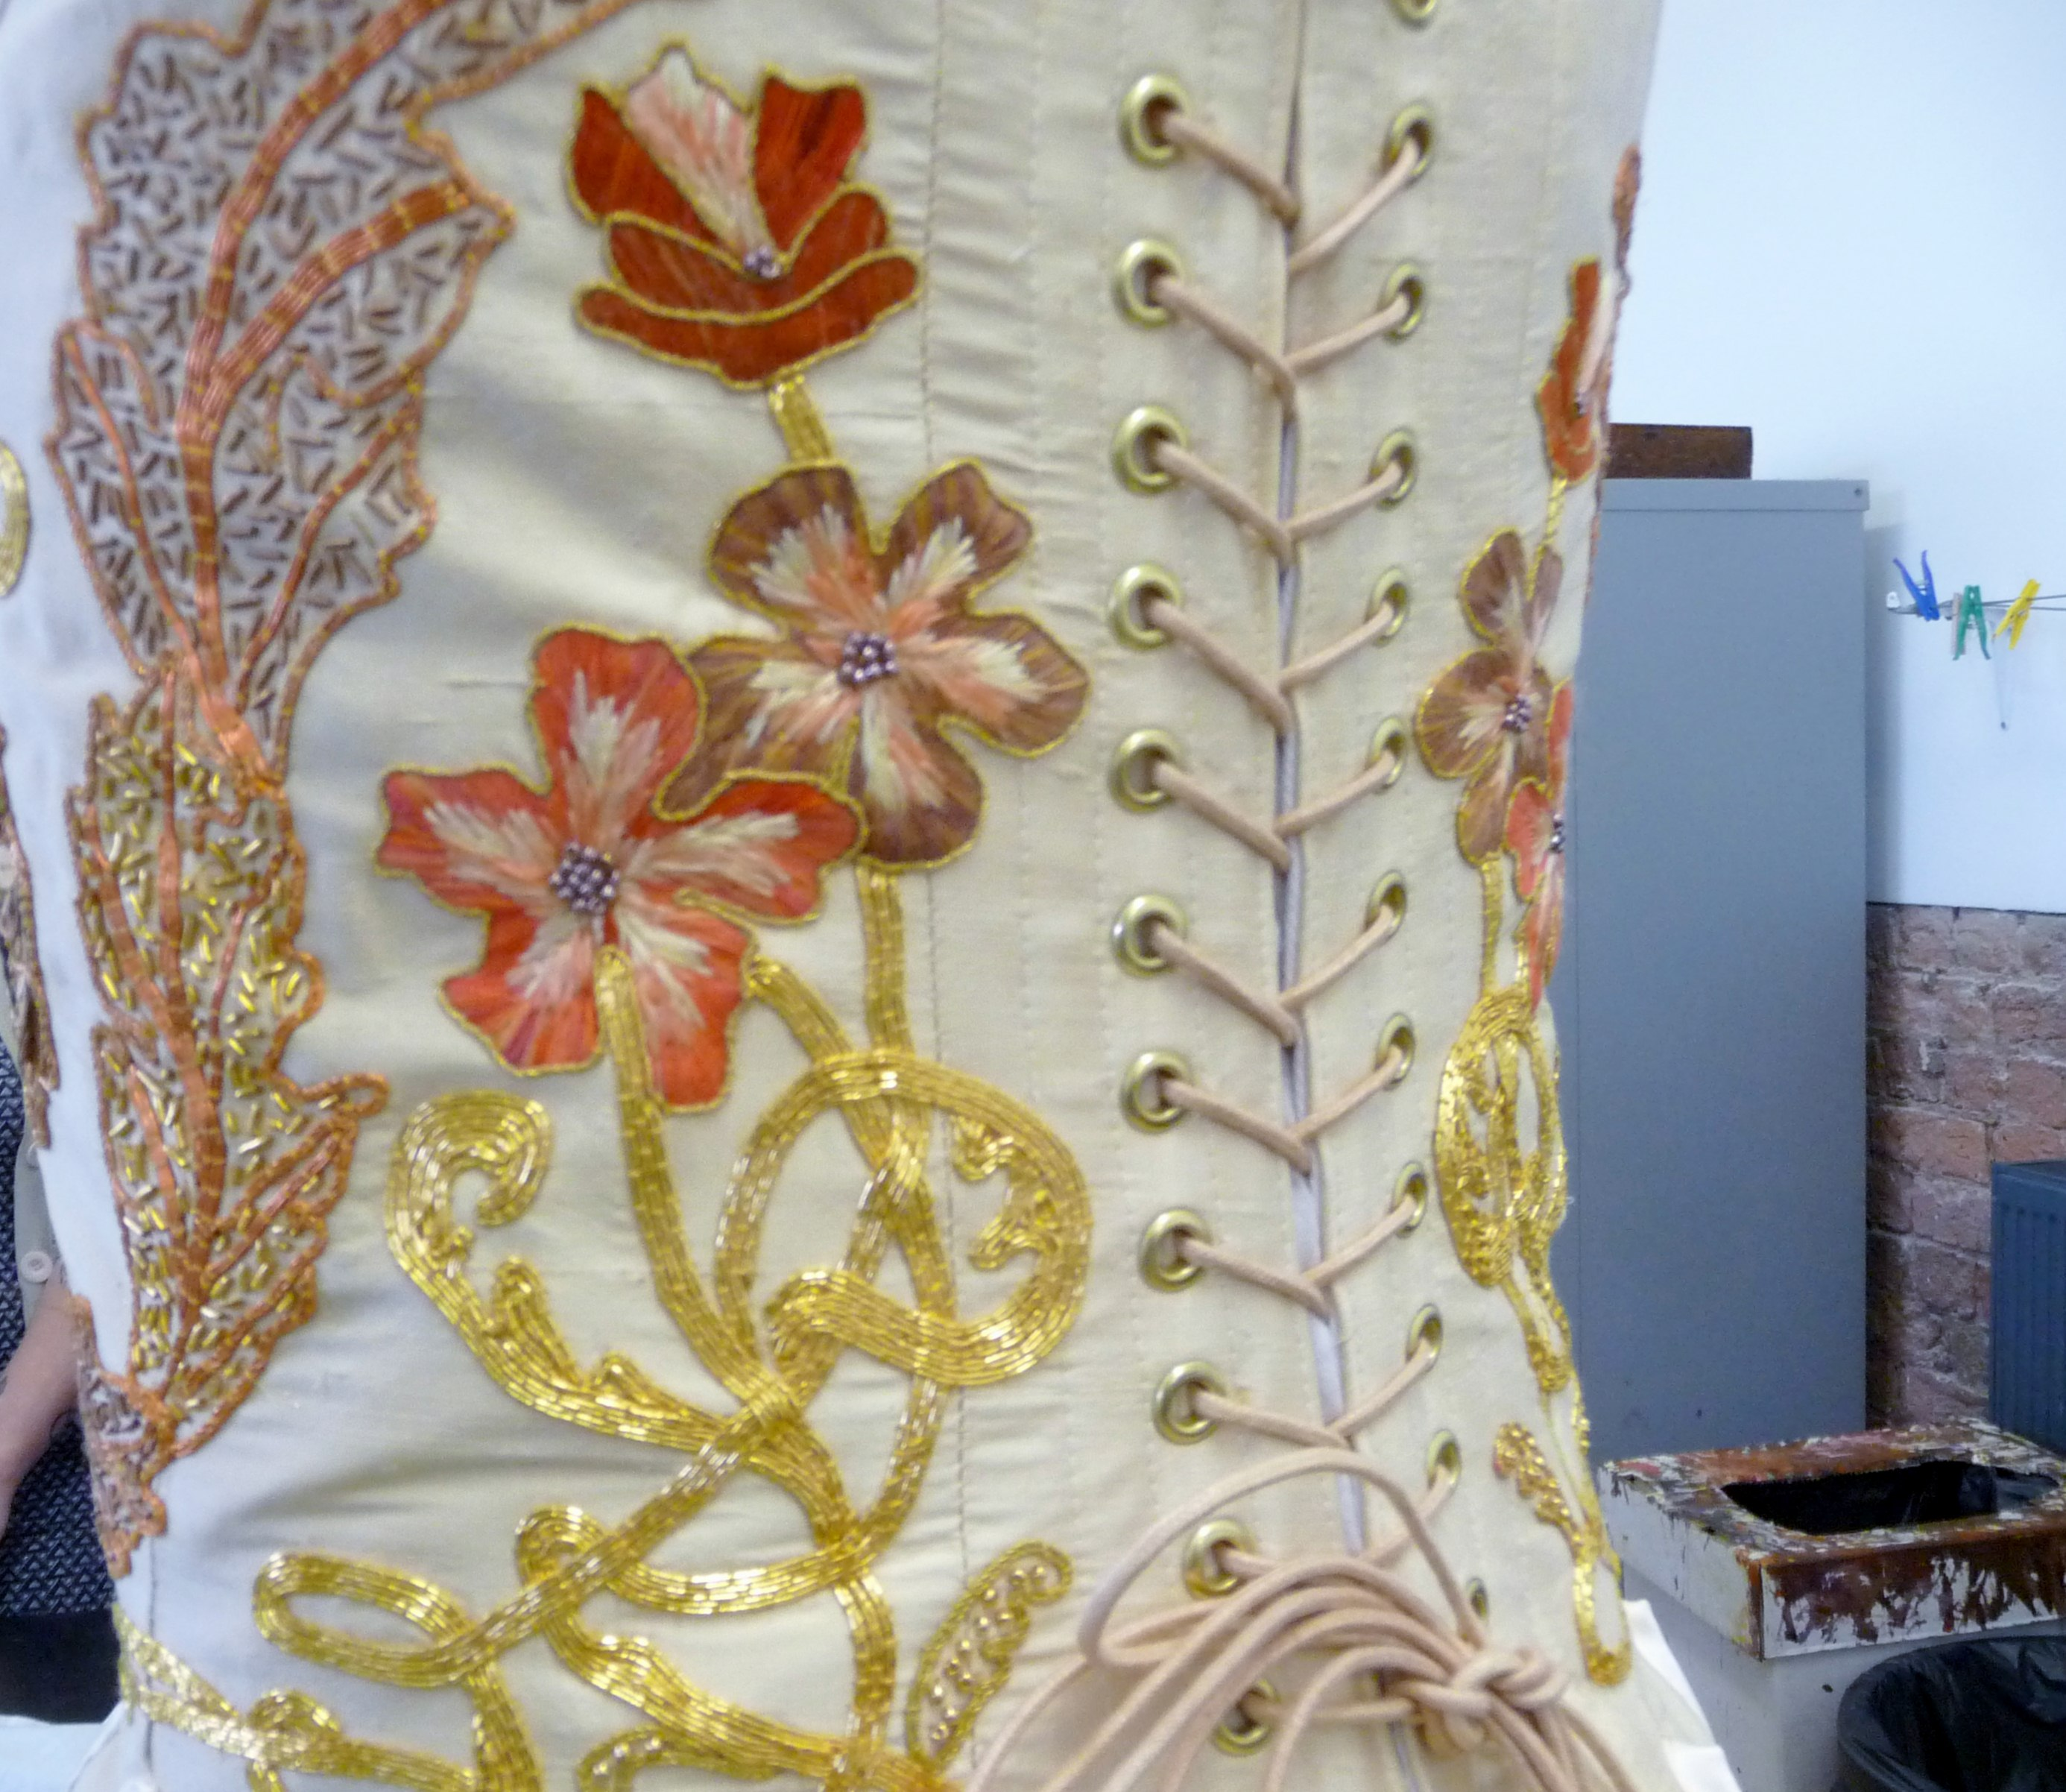 NW Regional Rose Bowl competition 2015 winner Gill Roberts. Detail of stitching.